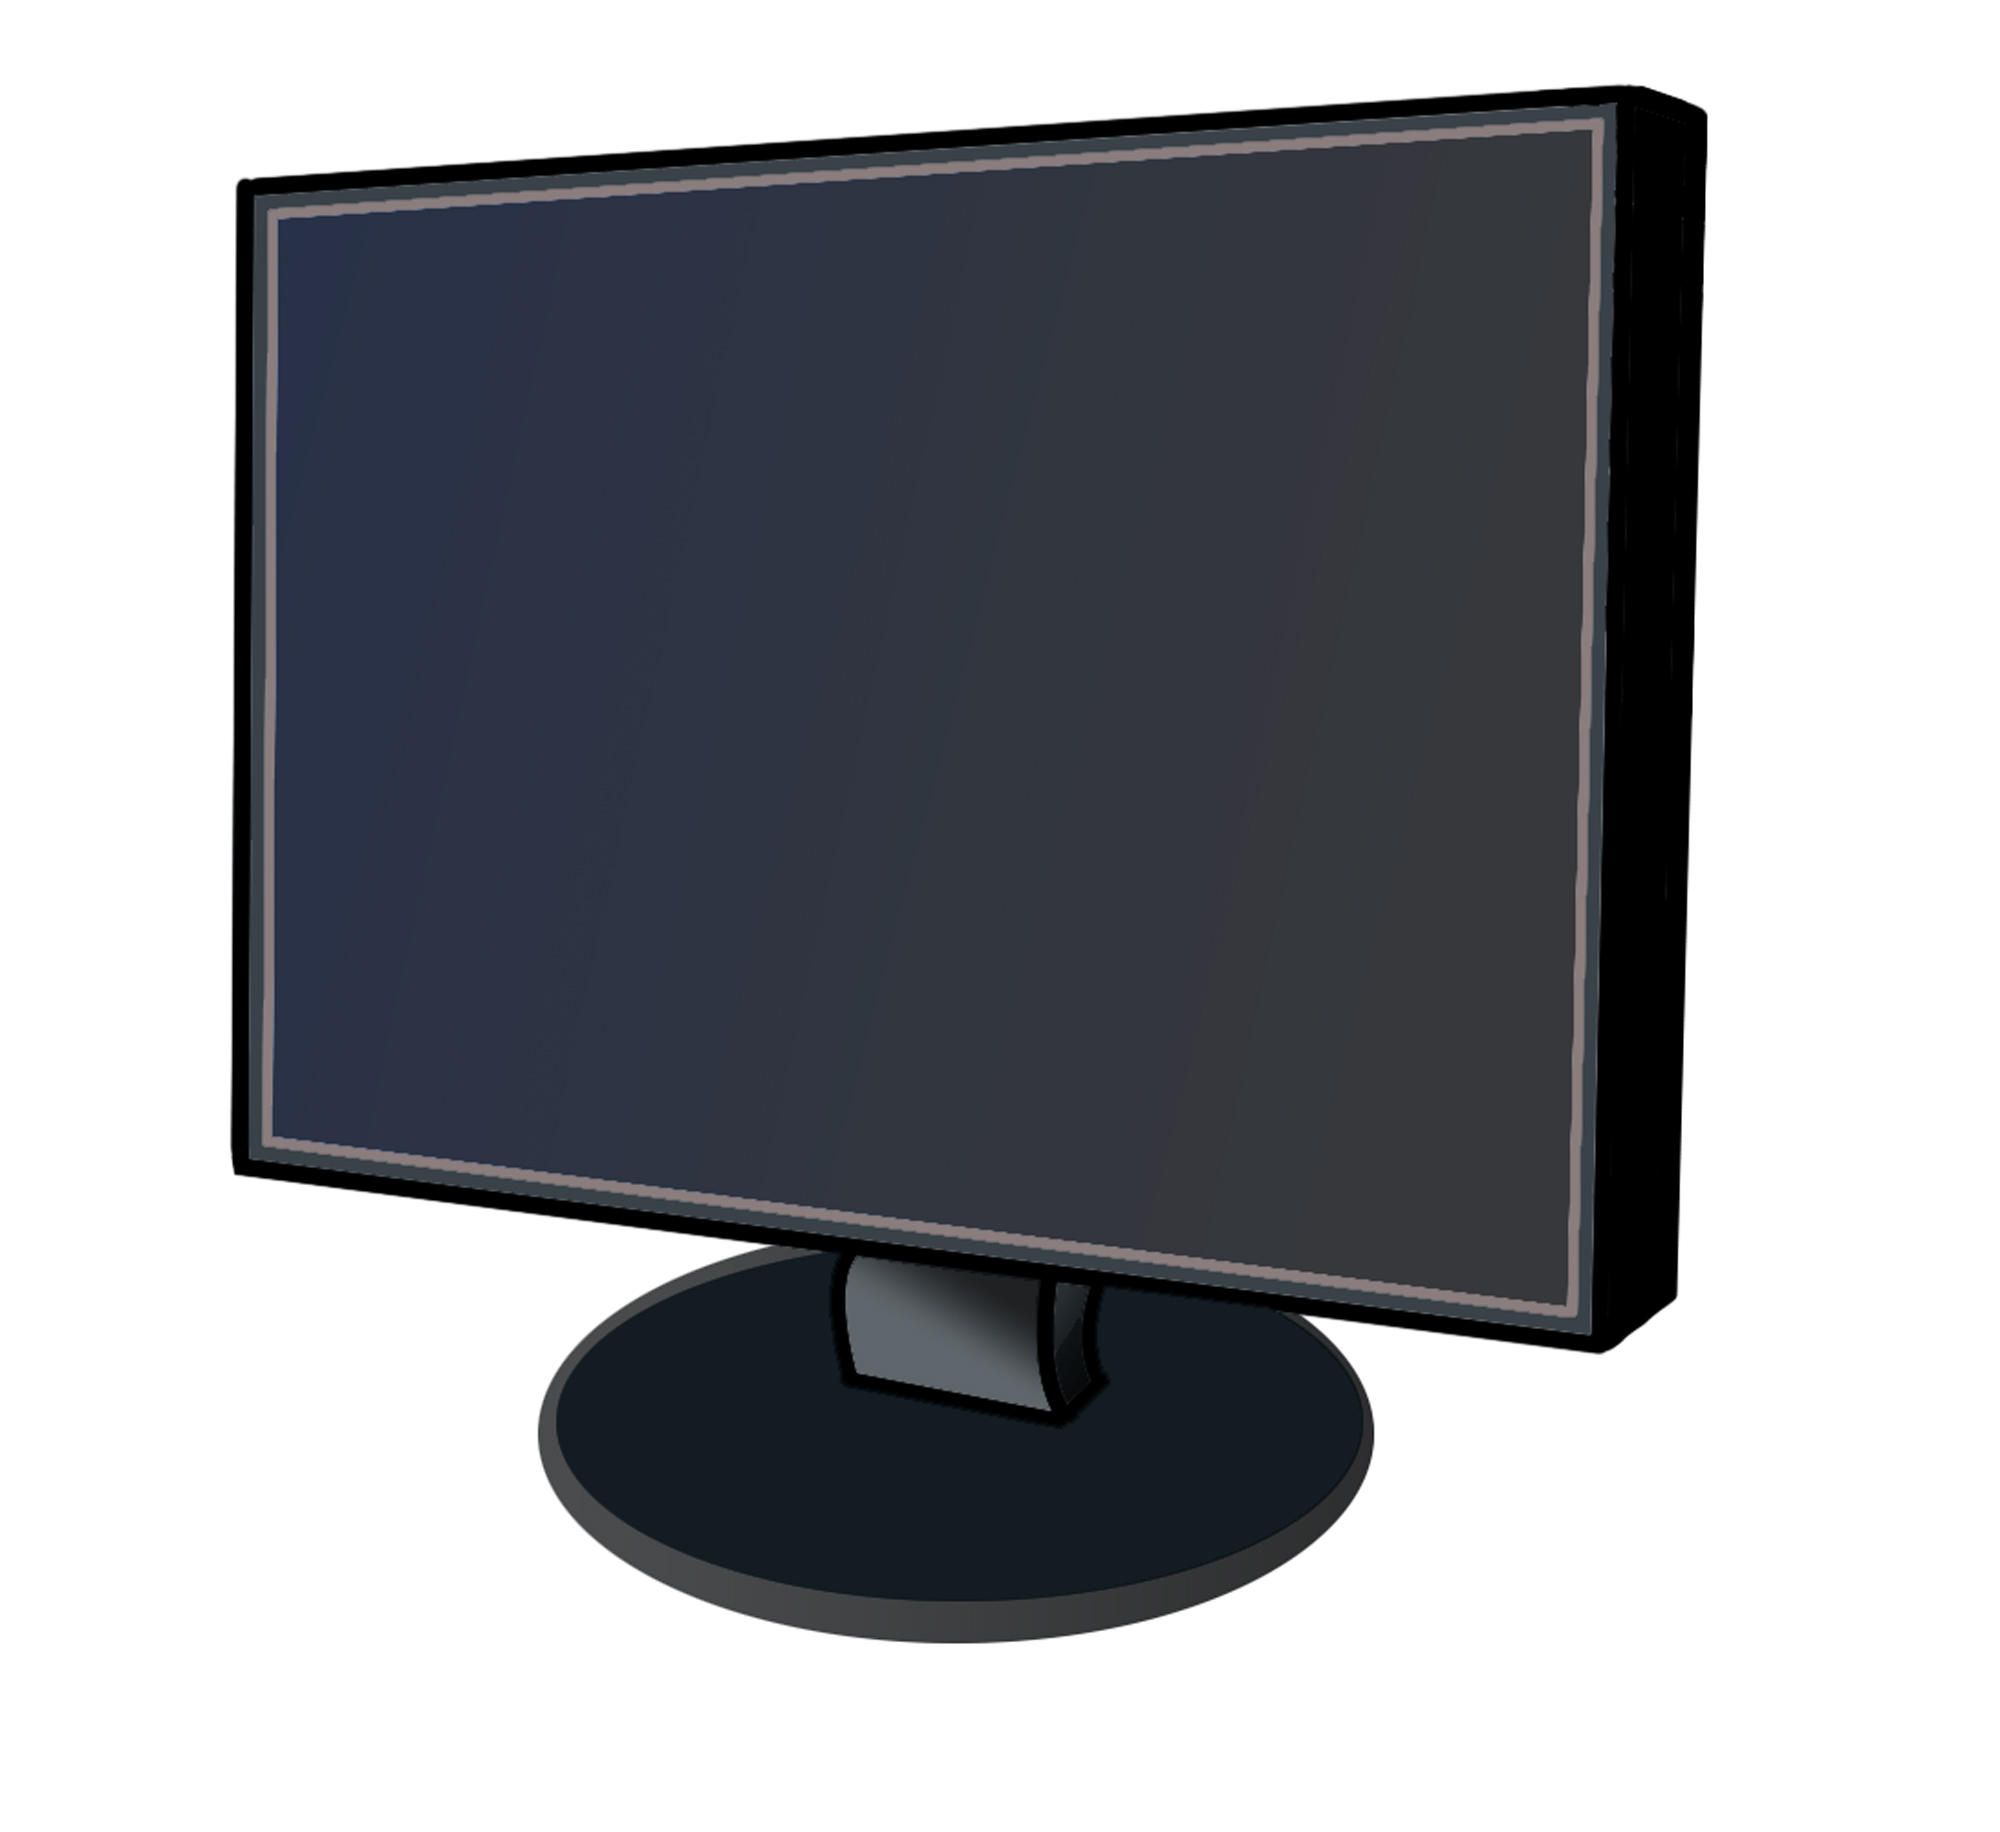 Computer Monitor Screen Clip Art Images & Pictures - Becuo